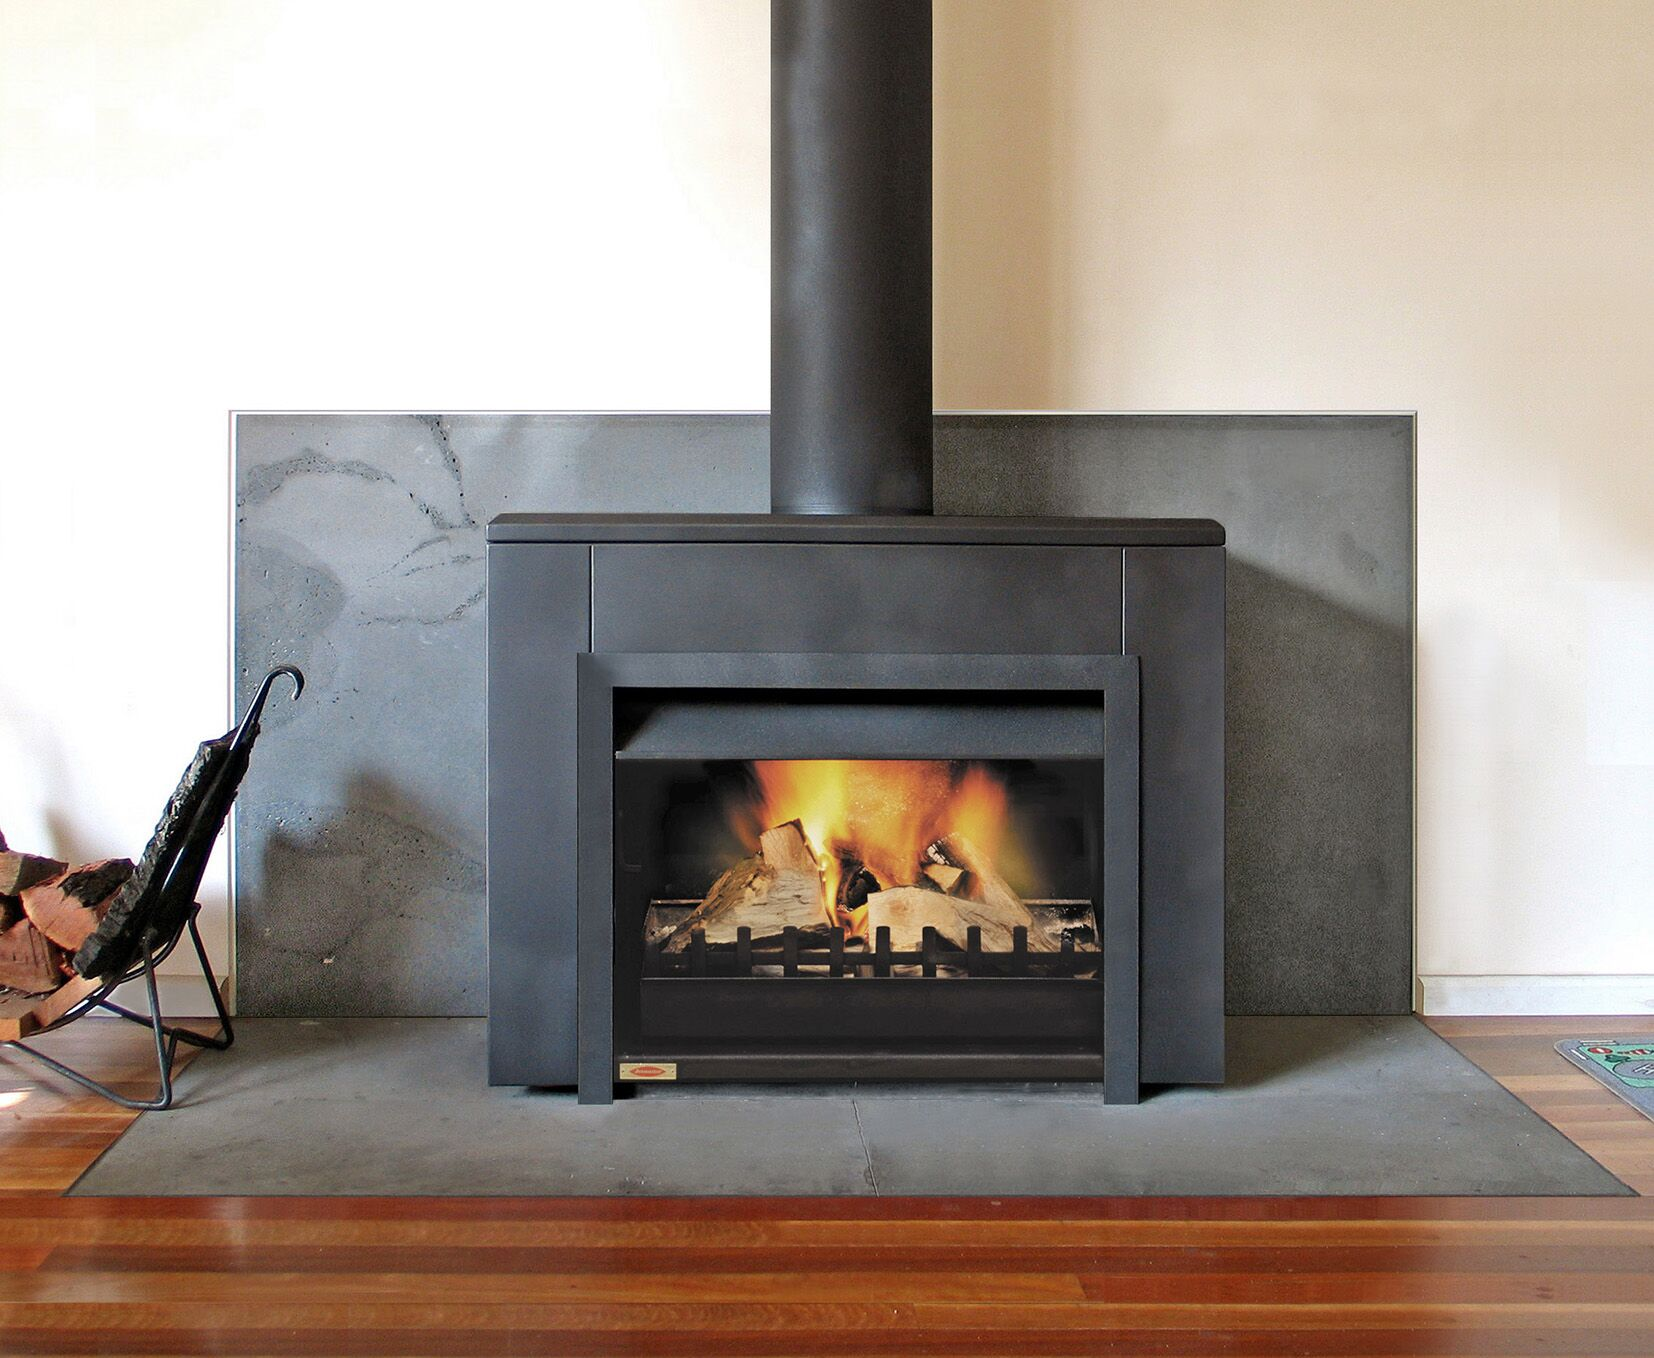 What is a double sided fireplace- find out more about it